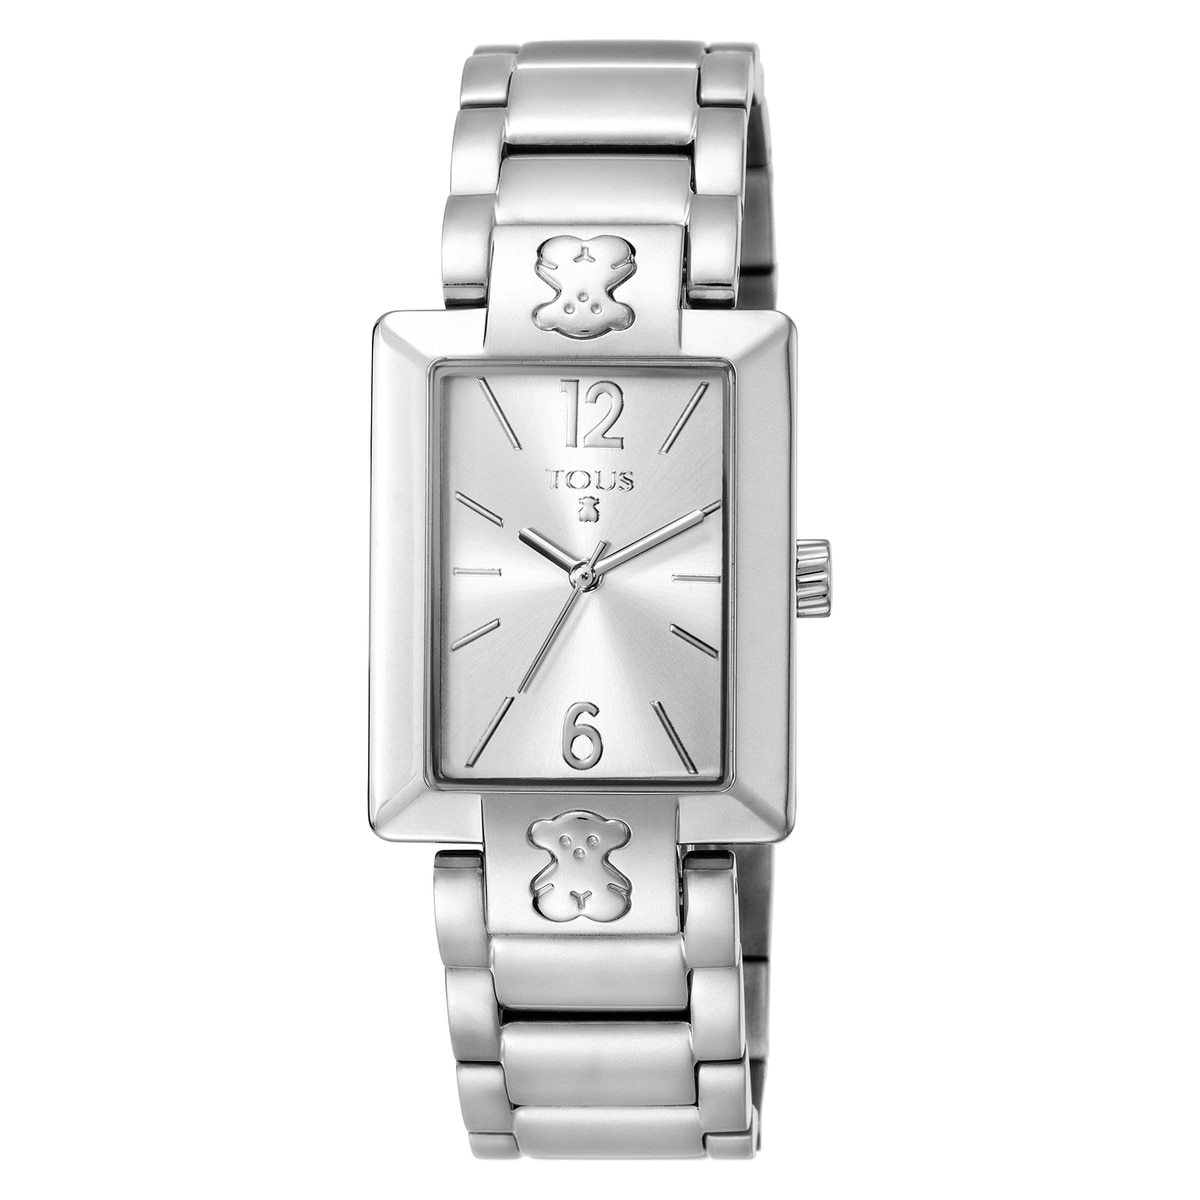 Steel Plate SQ Watch